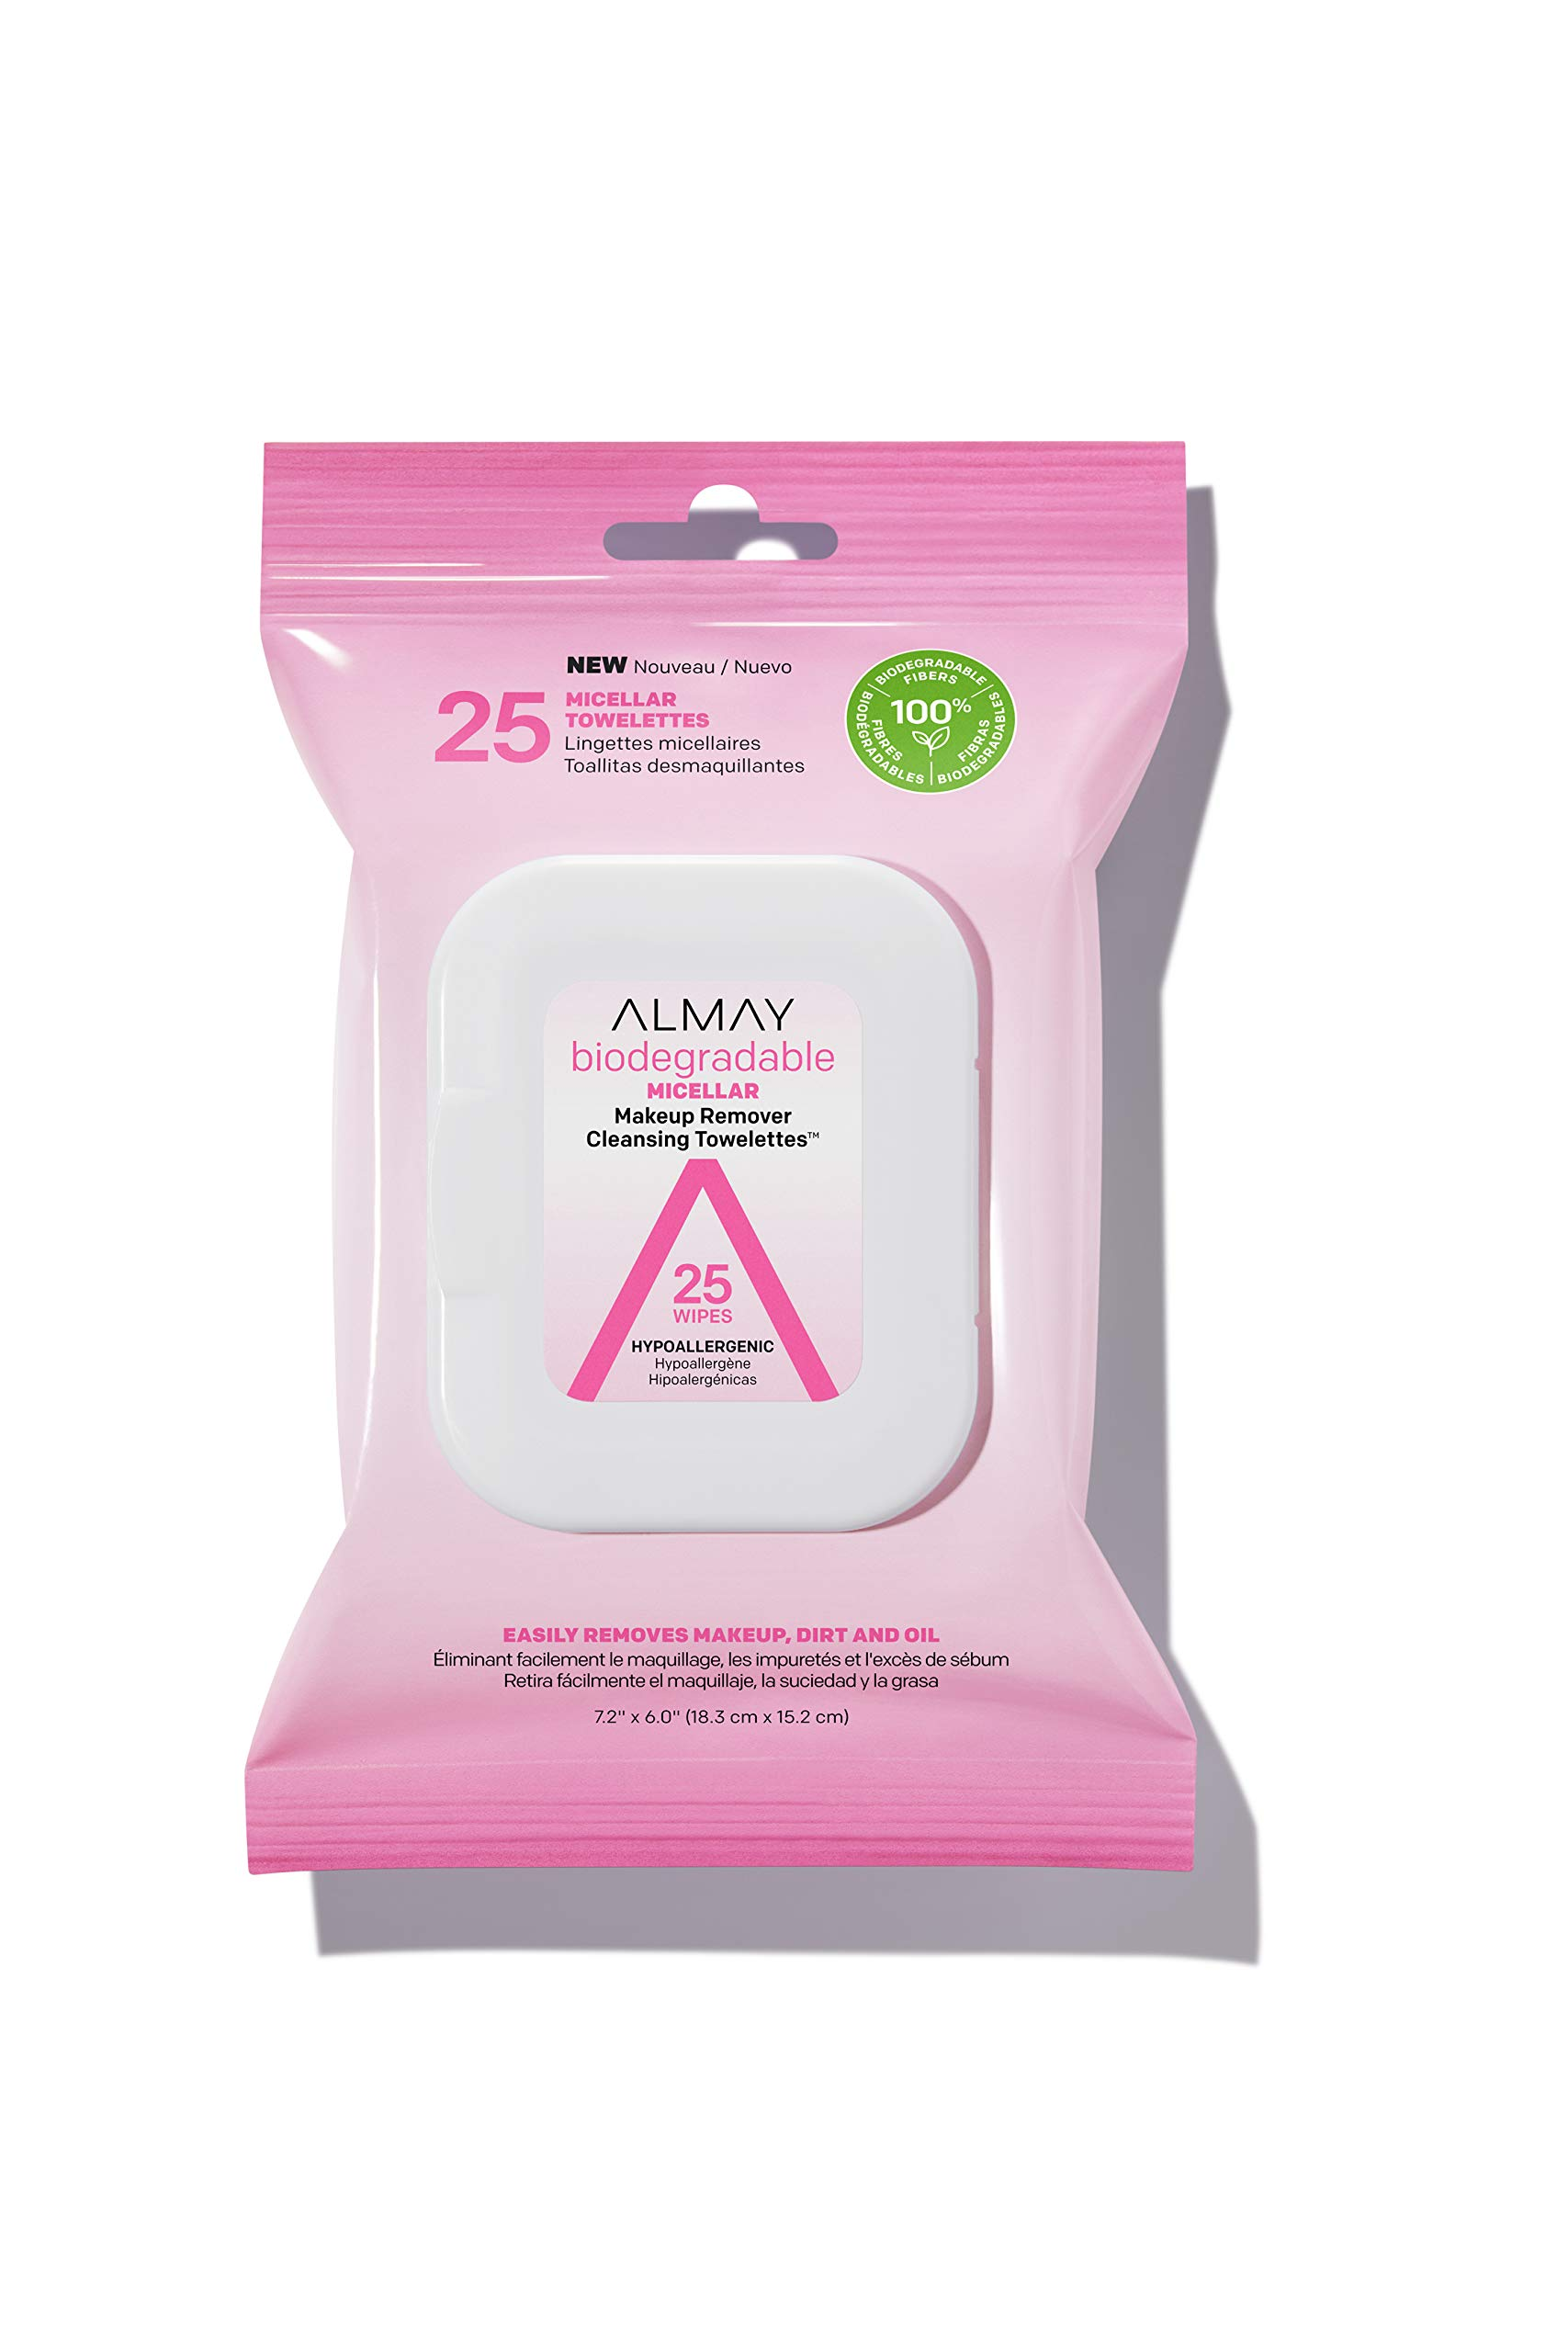 Almay Biodegradable Micellar Makeup Remover Cleansing Towelettes, Hypoallergenic, Cruelty Free, Fragrance Free, Dermatologist Tested, 25 Makeup Remover Wipes